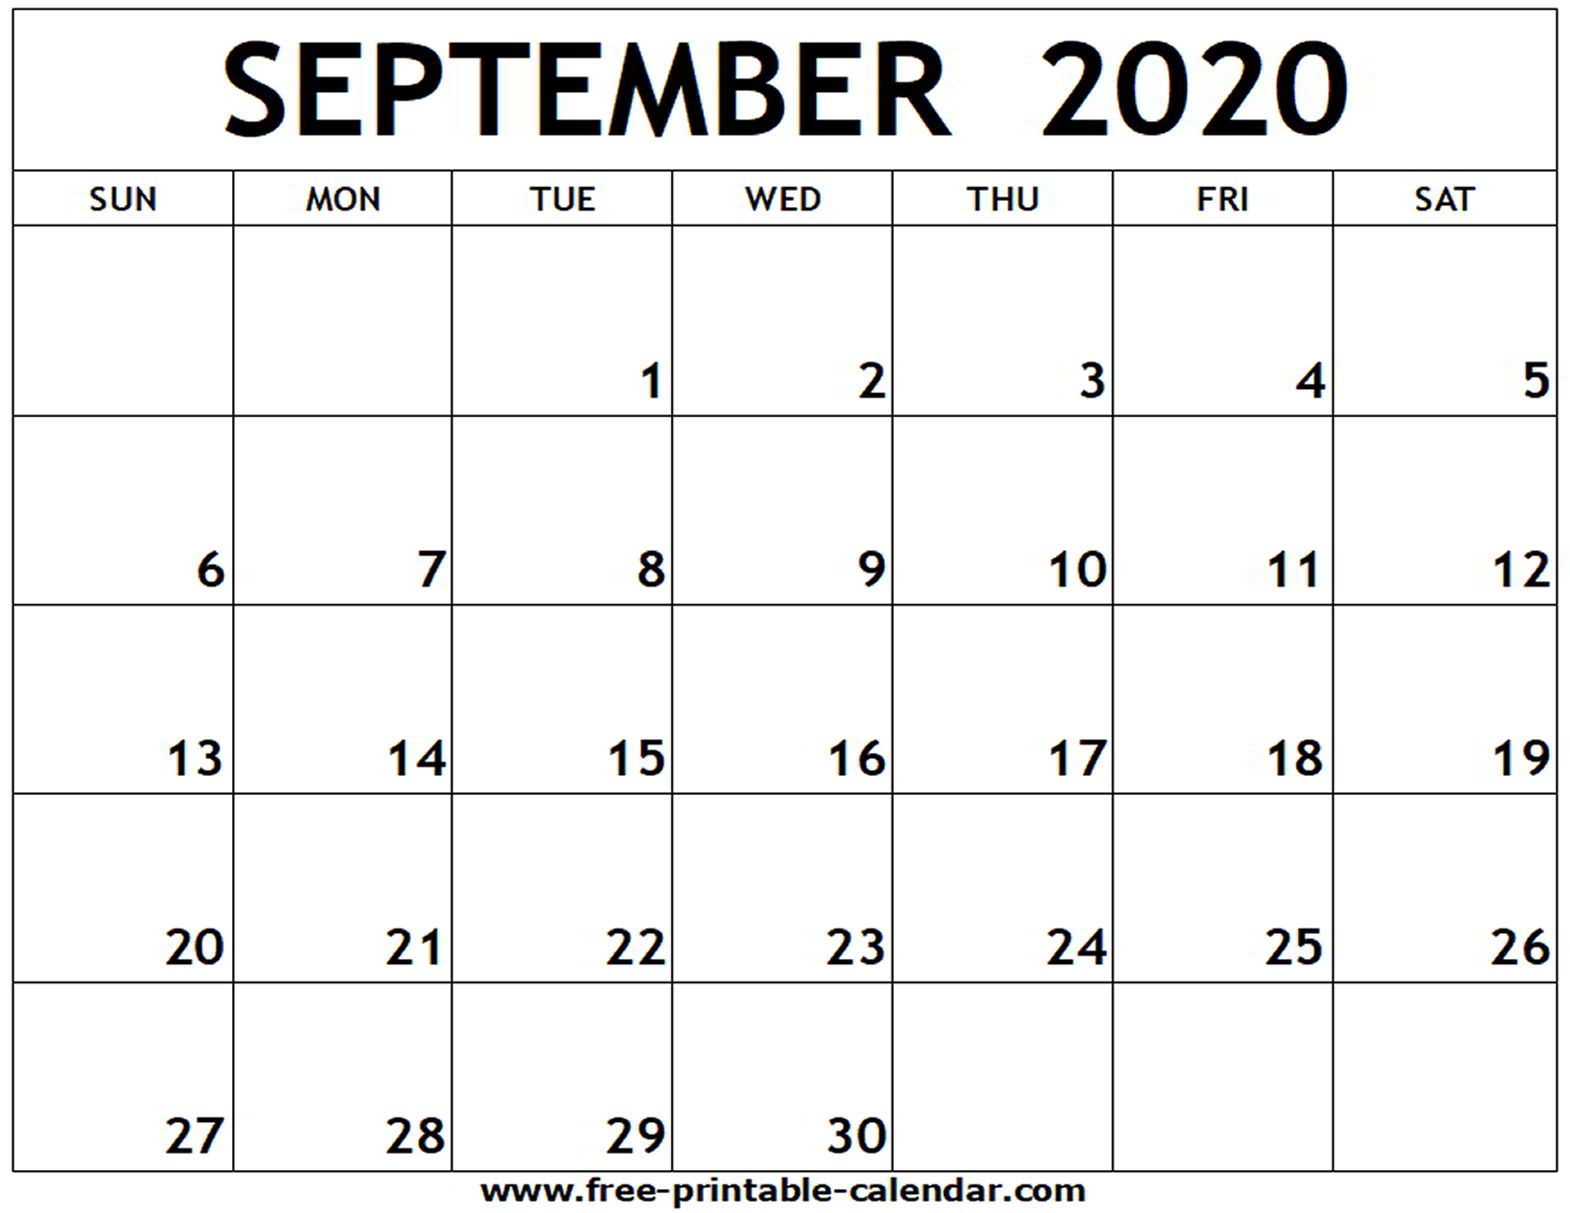 Printable Calendars September 2020 - Wpa.wpart.co throughout Free Printable Monthly Calendar September 2020